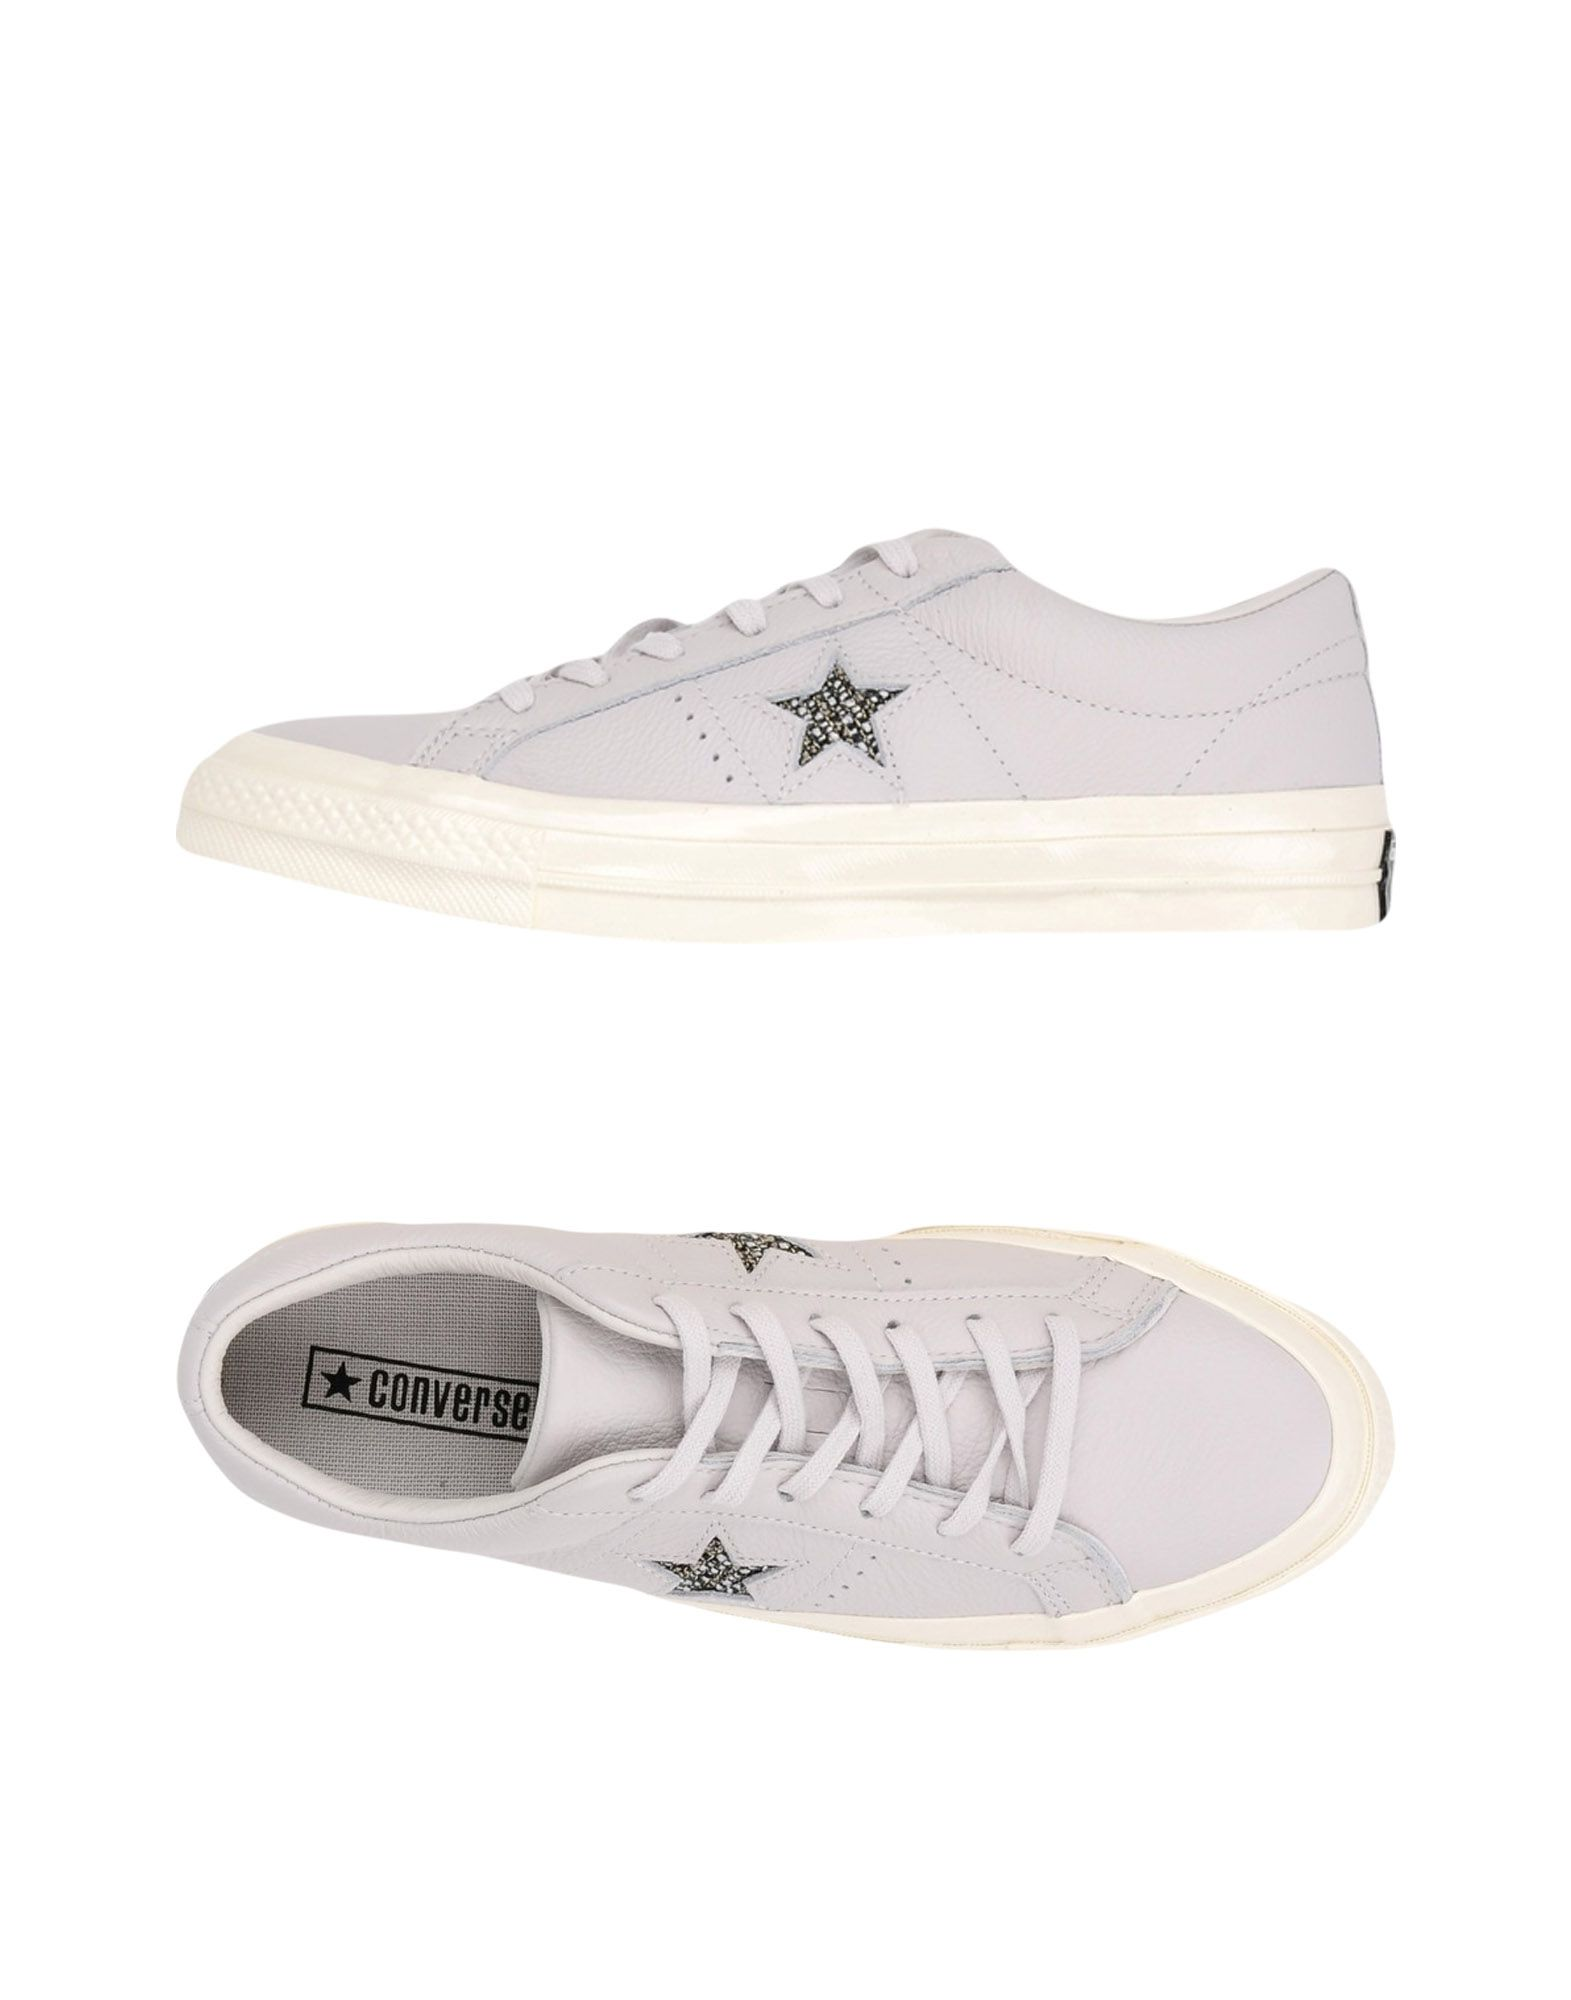 Scarpe da Ginnastica Converse All Star One Star Ox Donna Leather - Donna Ox - 11394558MX 2a271e